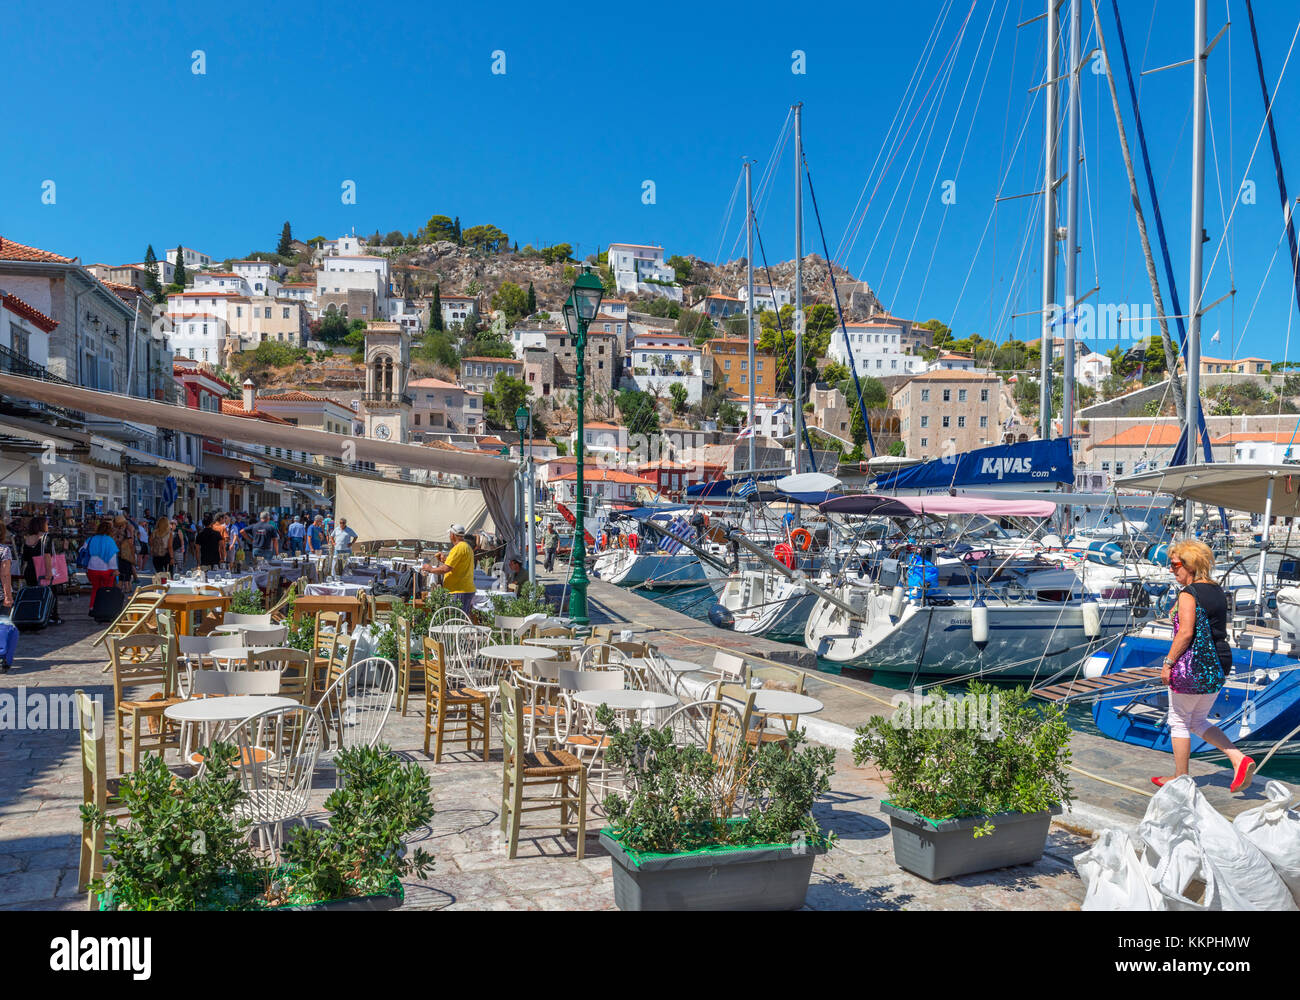 Cafes by the harbour in Hydra, Saronic Islands, Greece - Stock Image